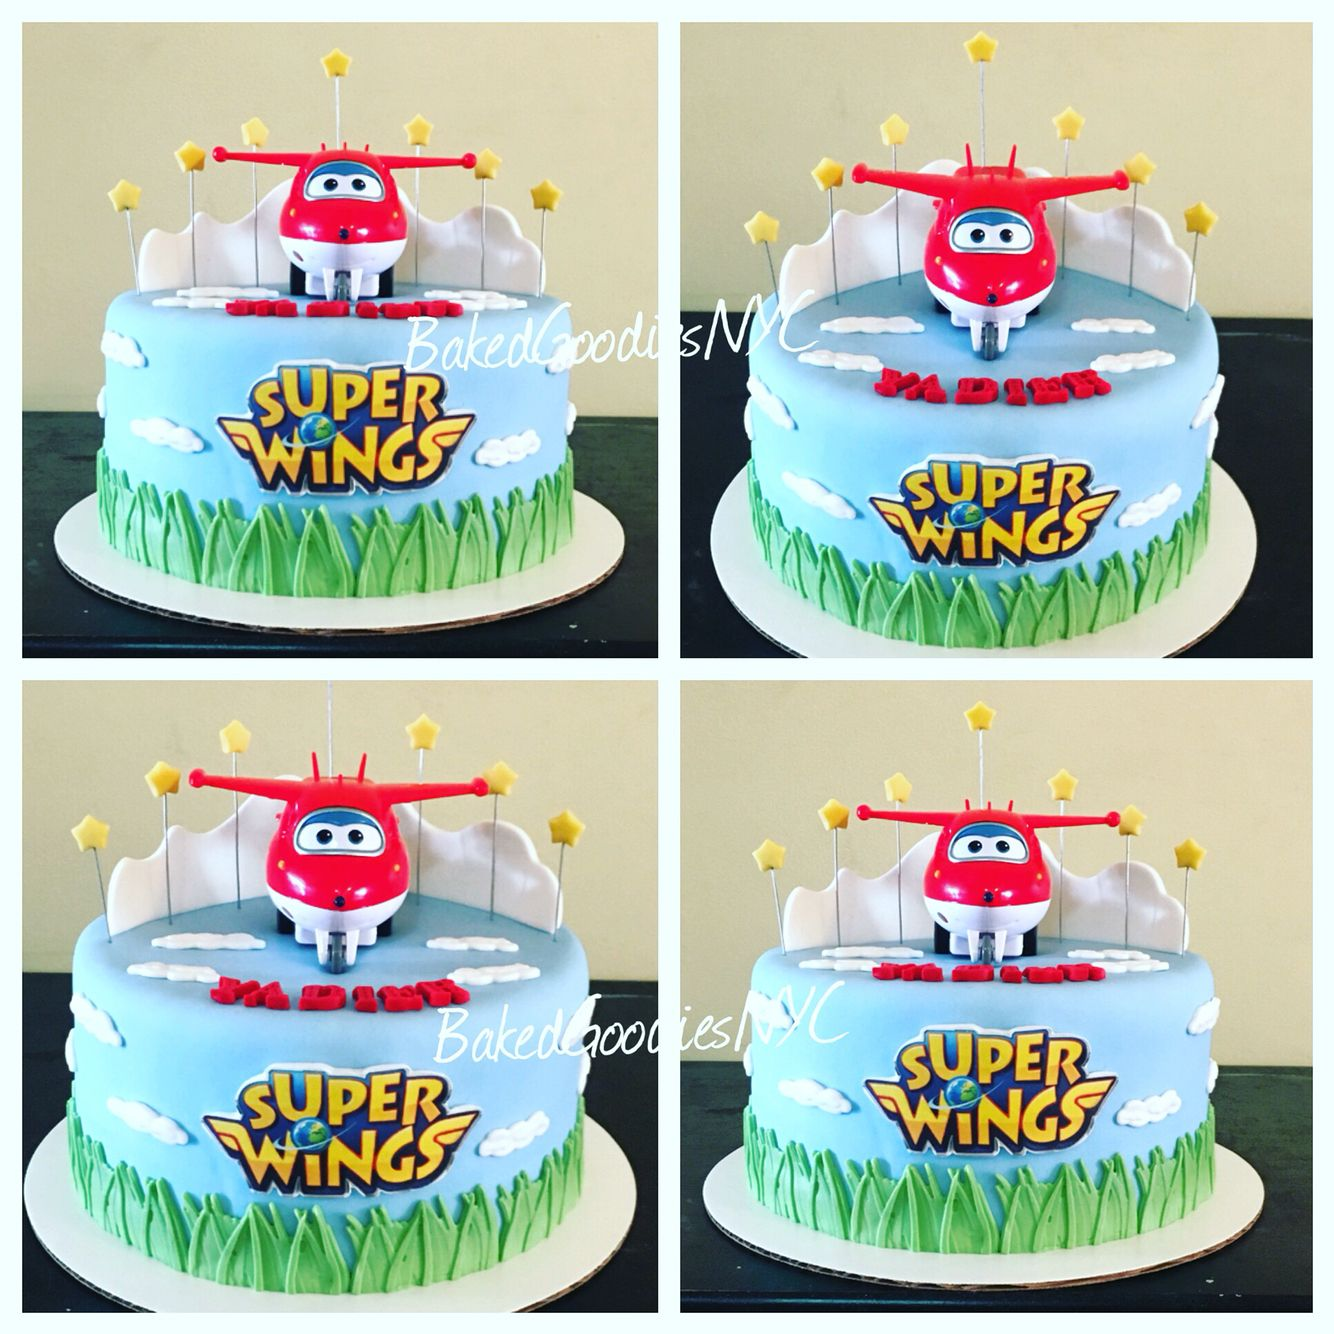 SUPER WINGS CAKE | CAKES | Birthday, 5th birthday cake, Birthday cake